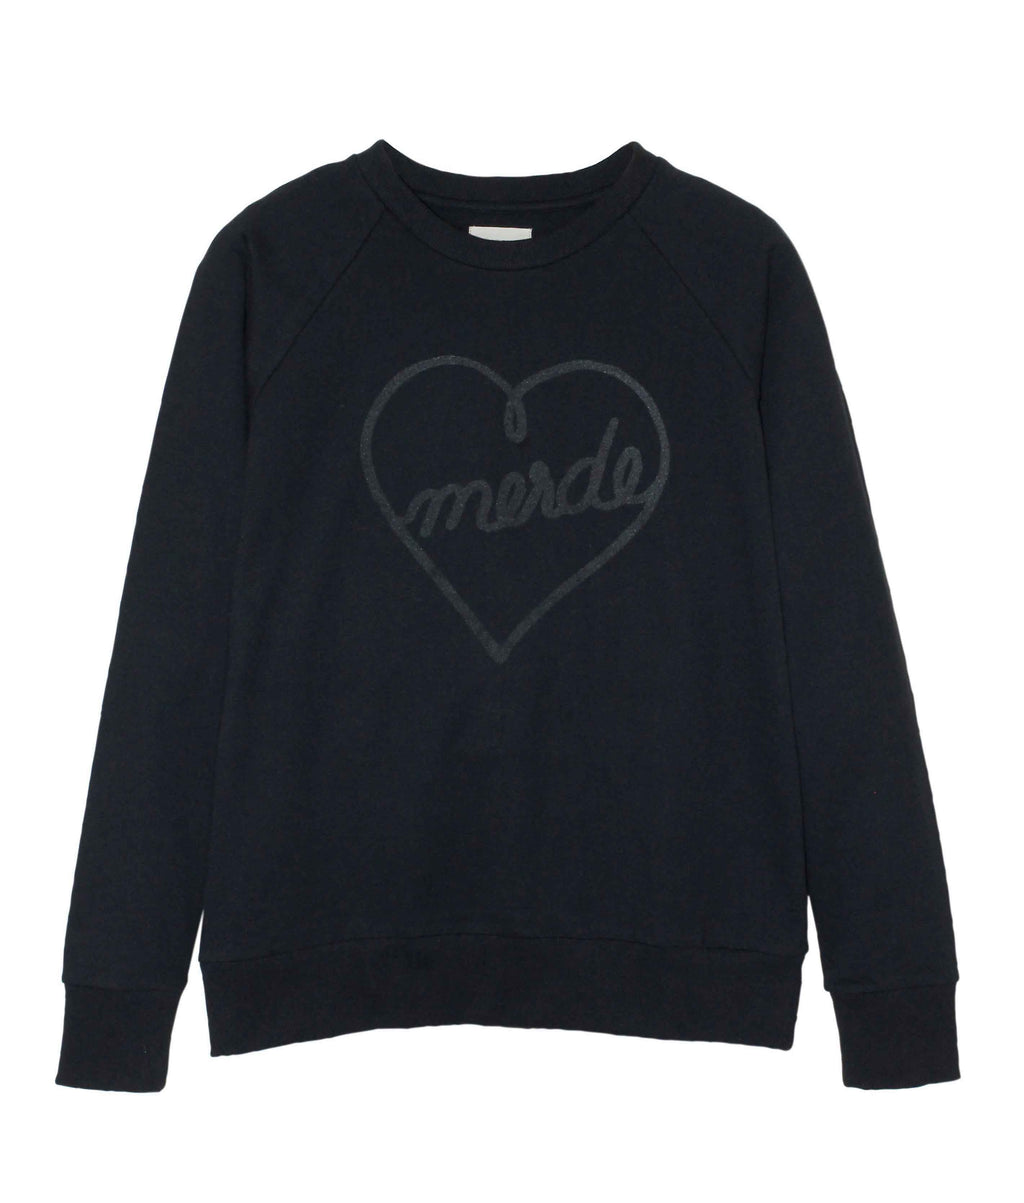 SweatHeart Black on Black Sweatshirt